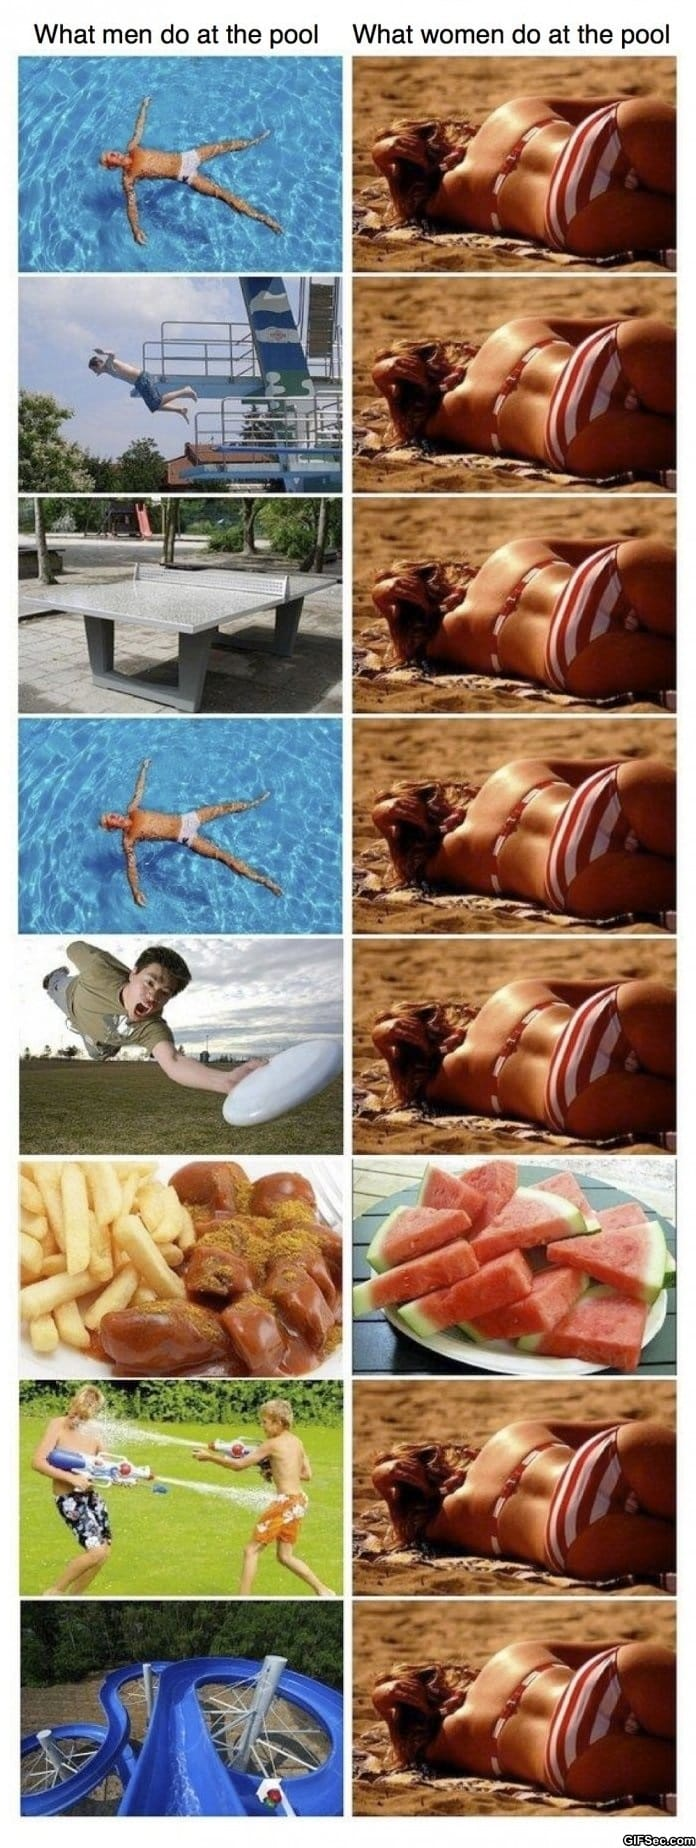 men-and-women-activities-at-the-pool